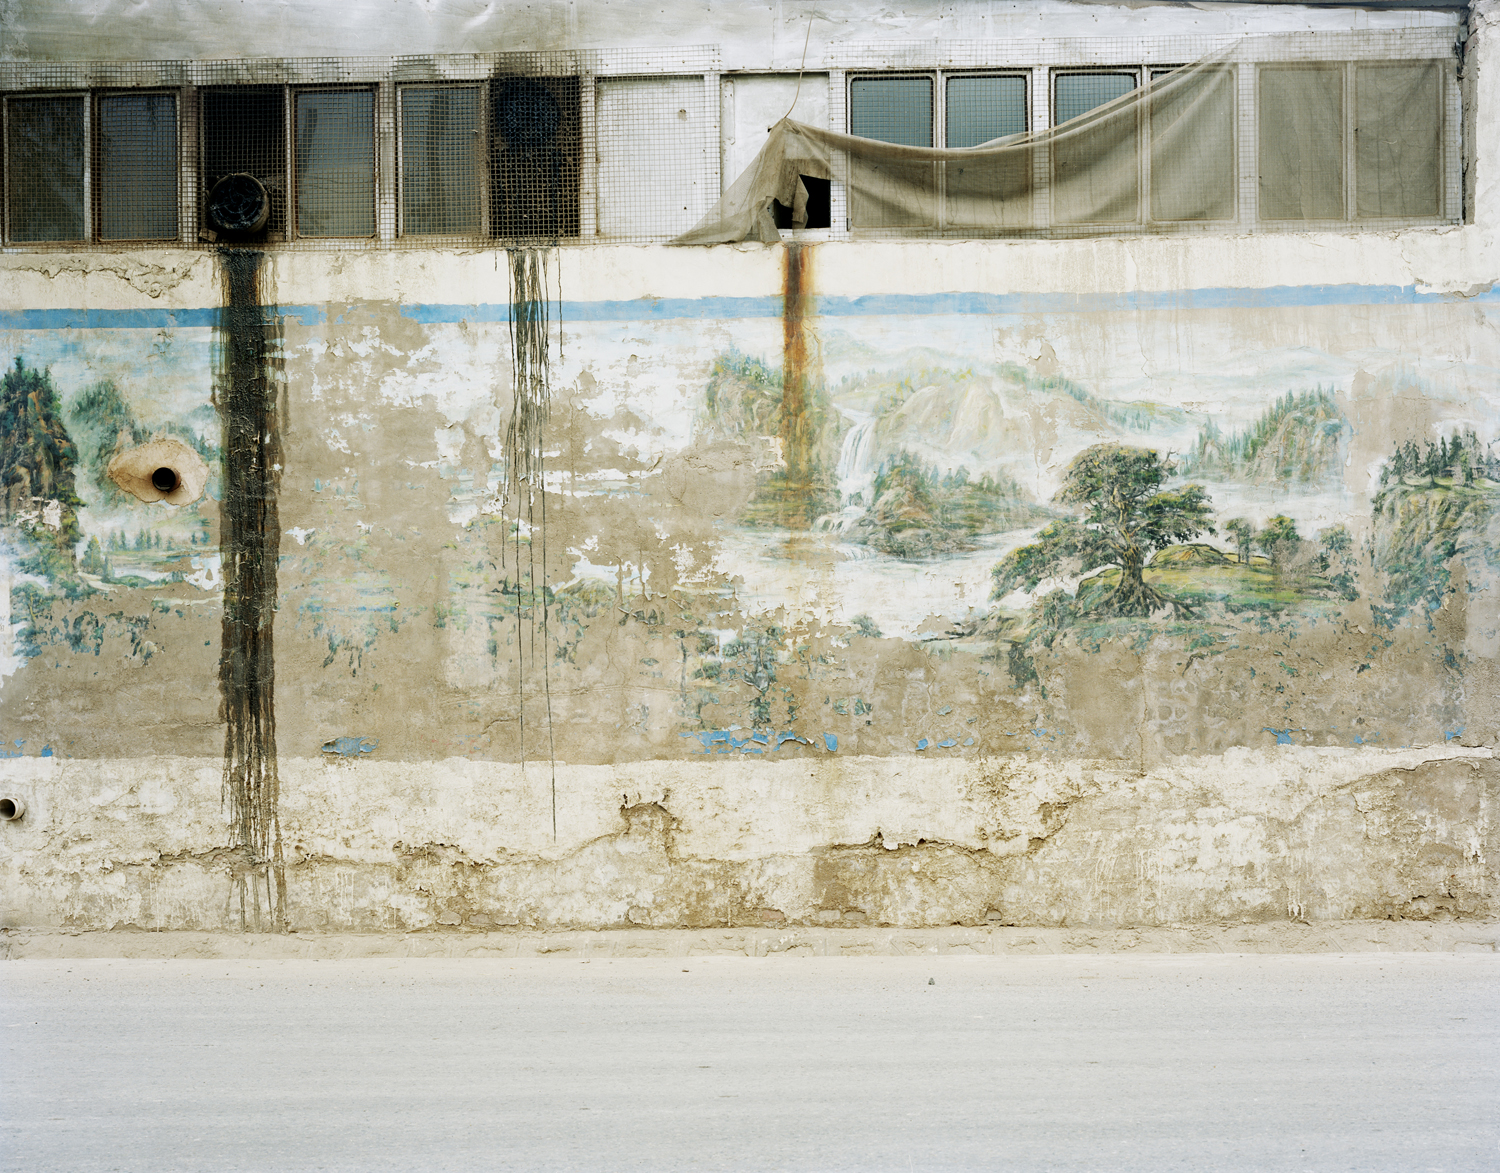 Landscape painting on a wall, Gansu province.